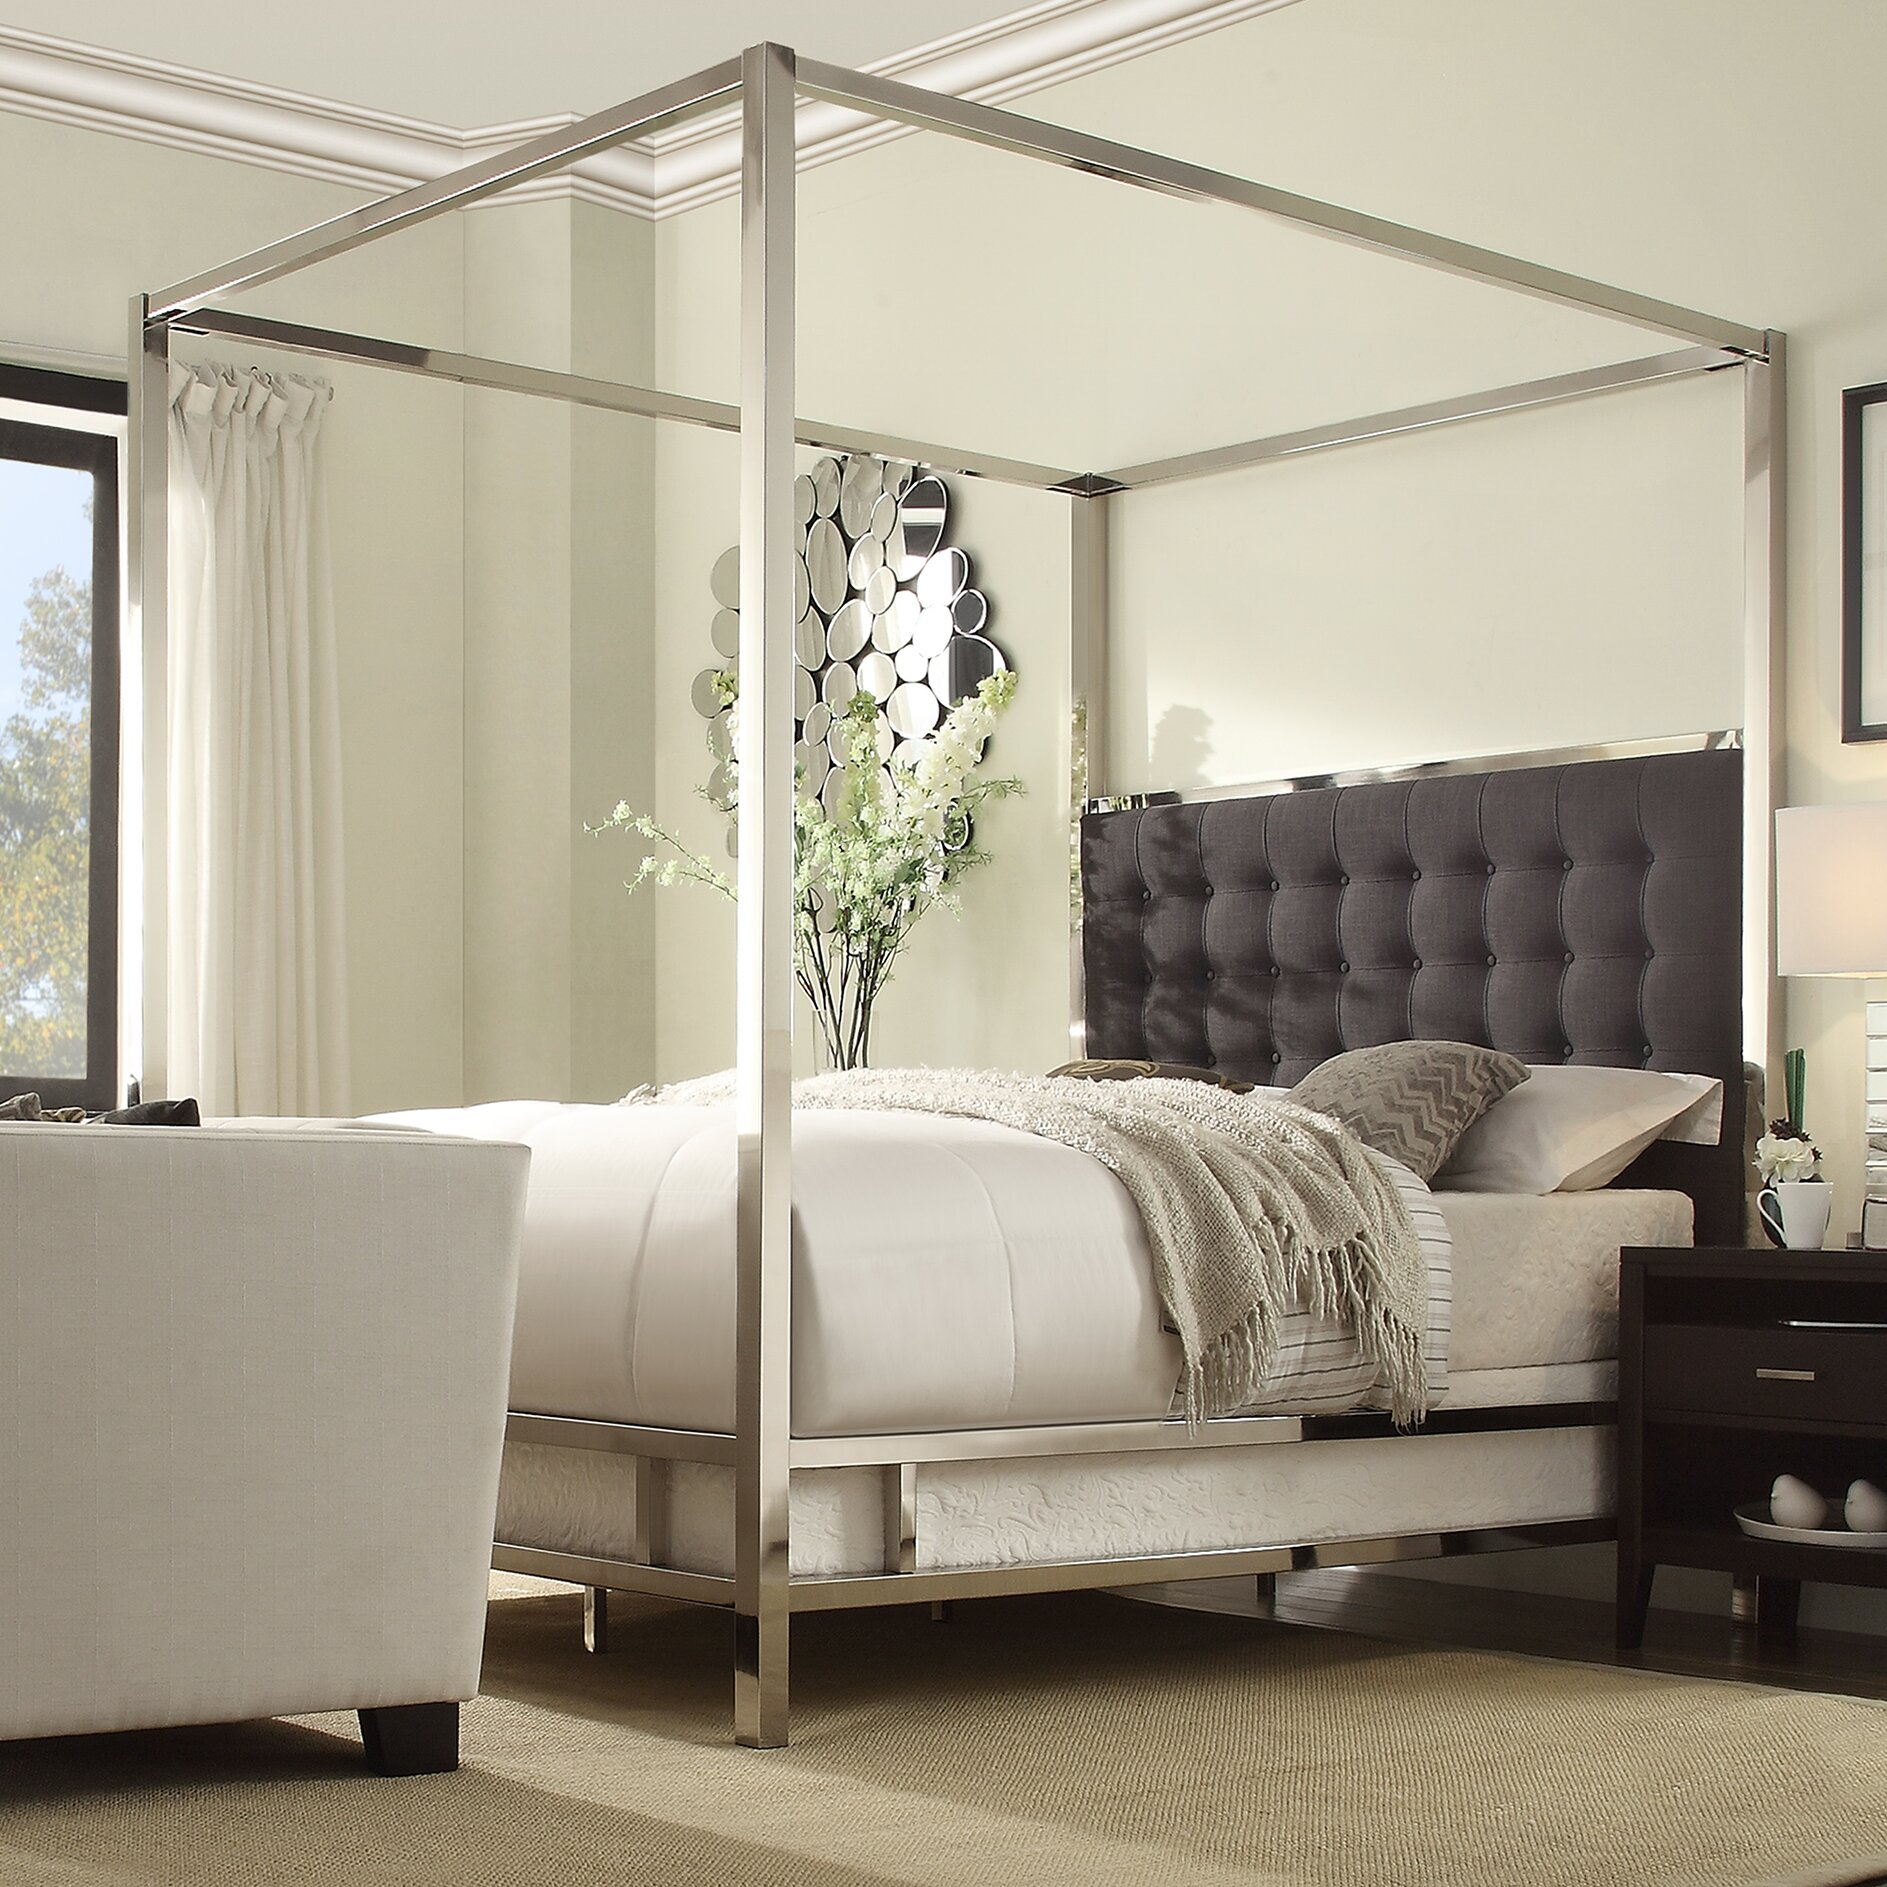 Reviews Of Room And Board Canopy Beds